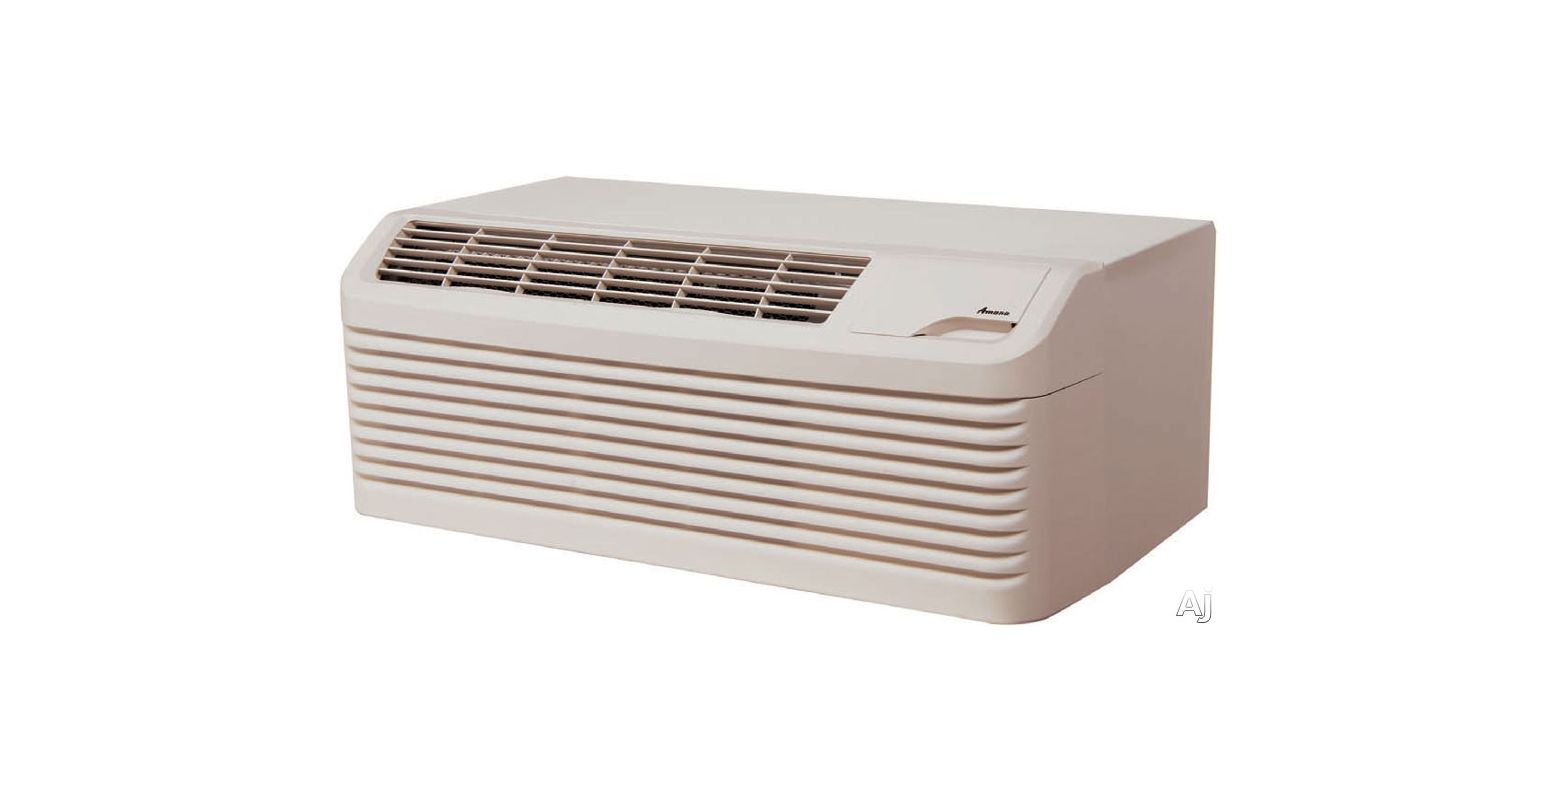 Stonewood Beige 9 000 BTU Packaged Terminal Air Conditioner  #735B4F